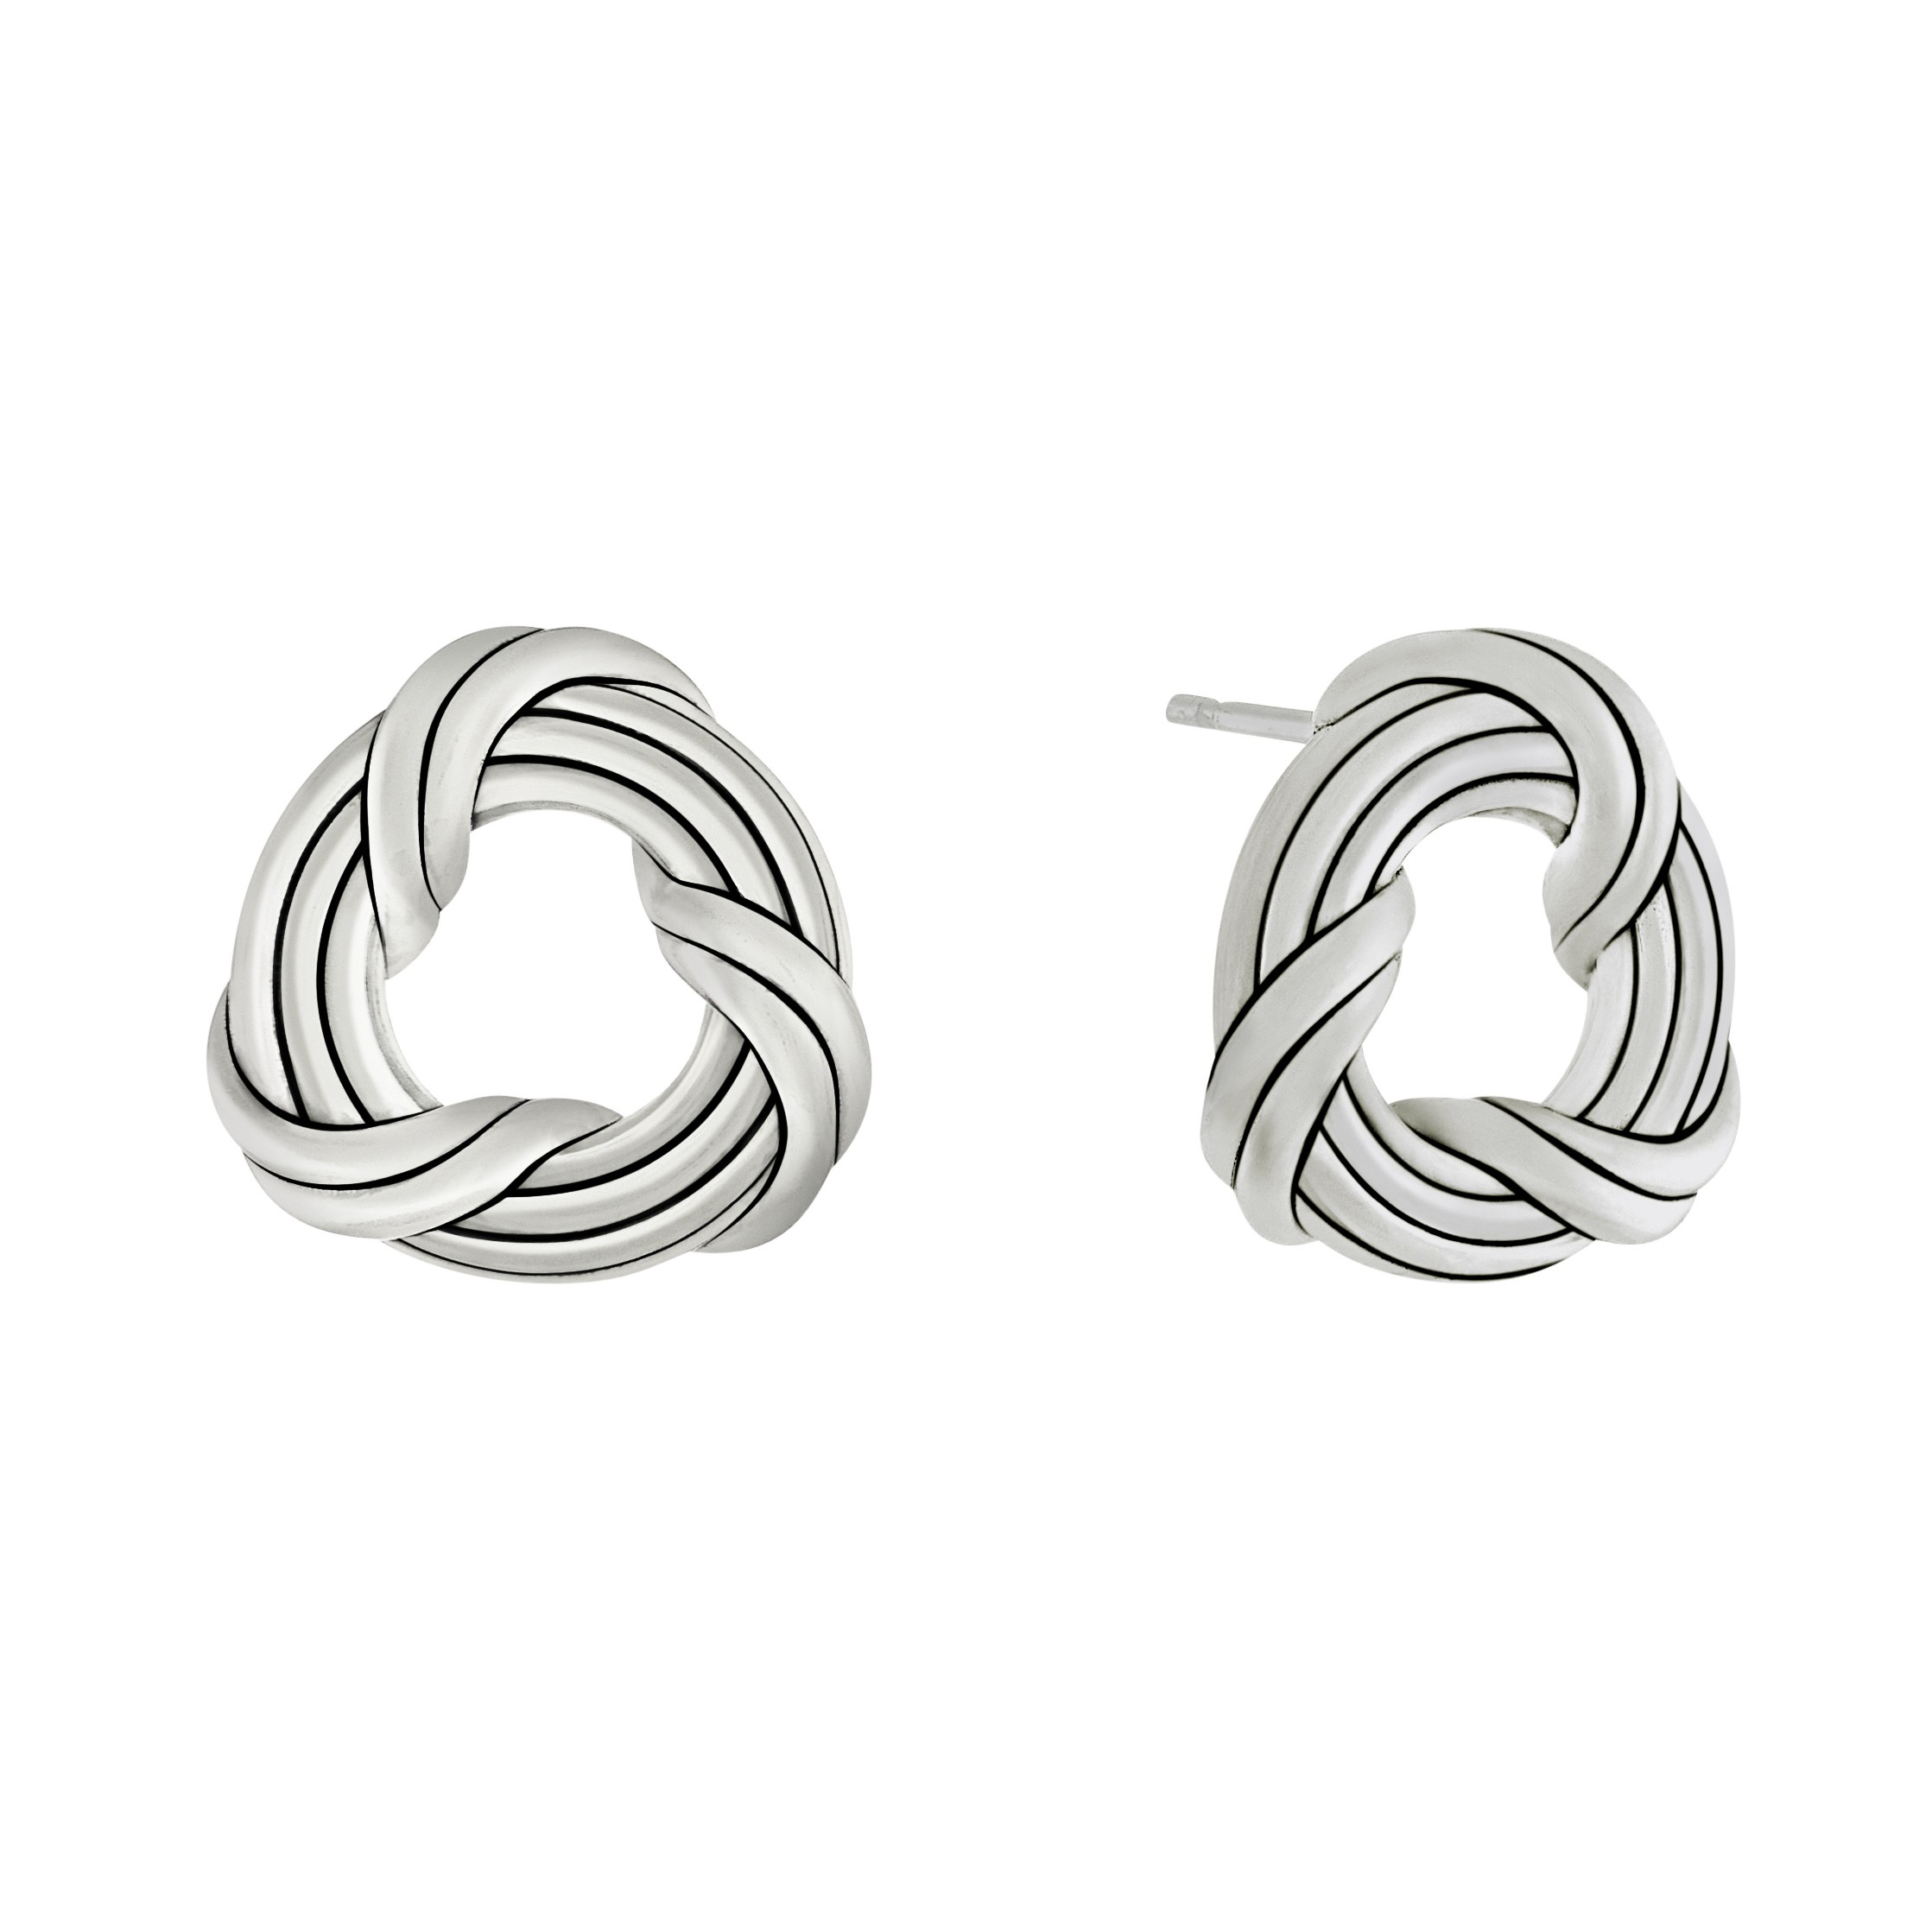 Signature Classic Stud Earrings in sterling silver